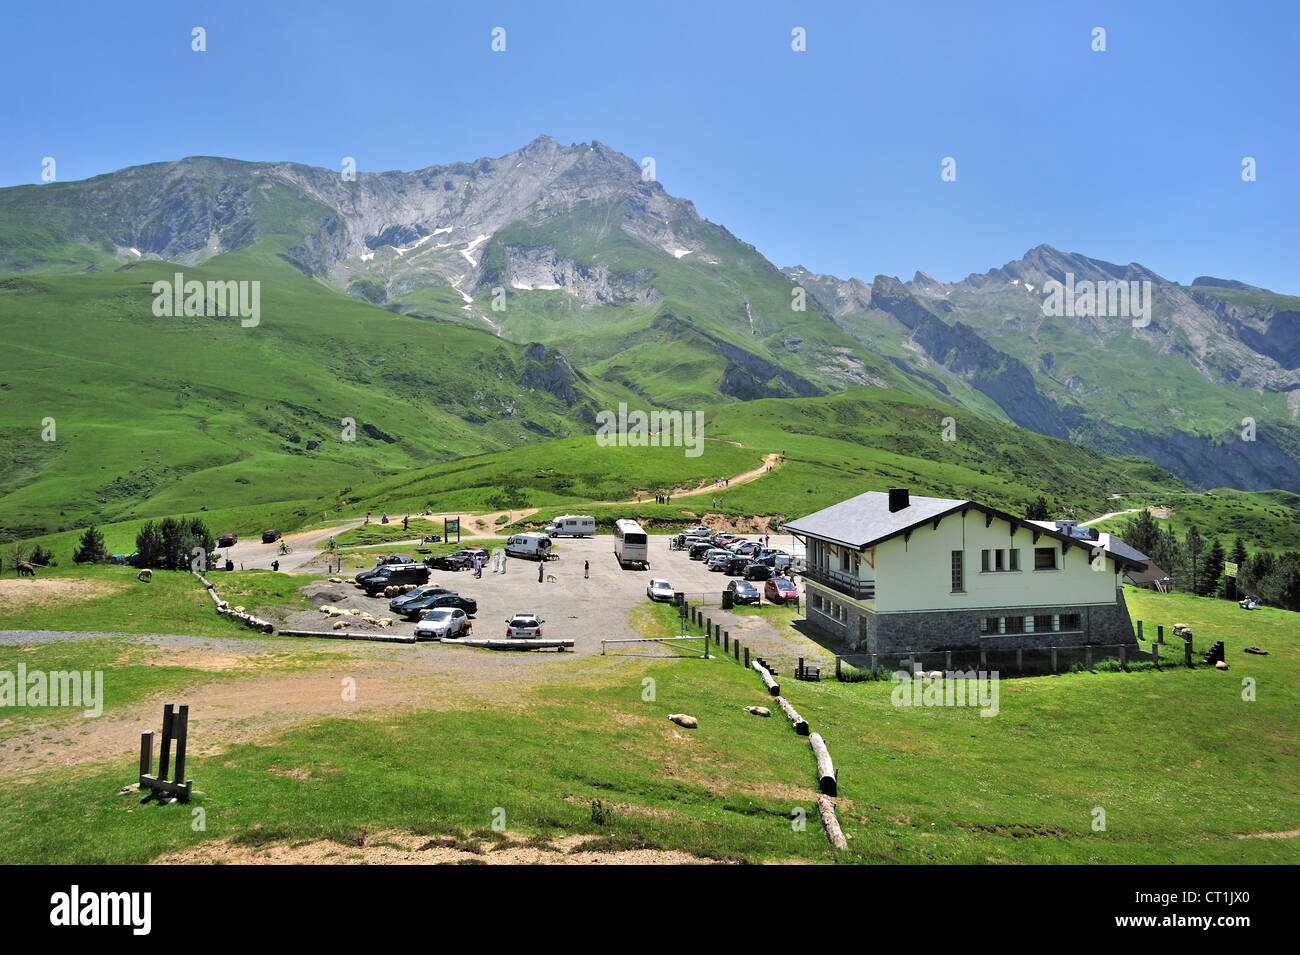 Cars and motorhomes at parking place of restaurant on the Col du Soulor, Hautes-Pyrénées, Pyrenees, France Stock Photo